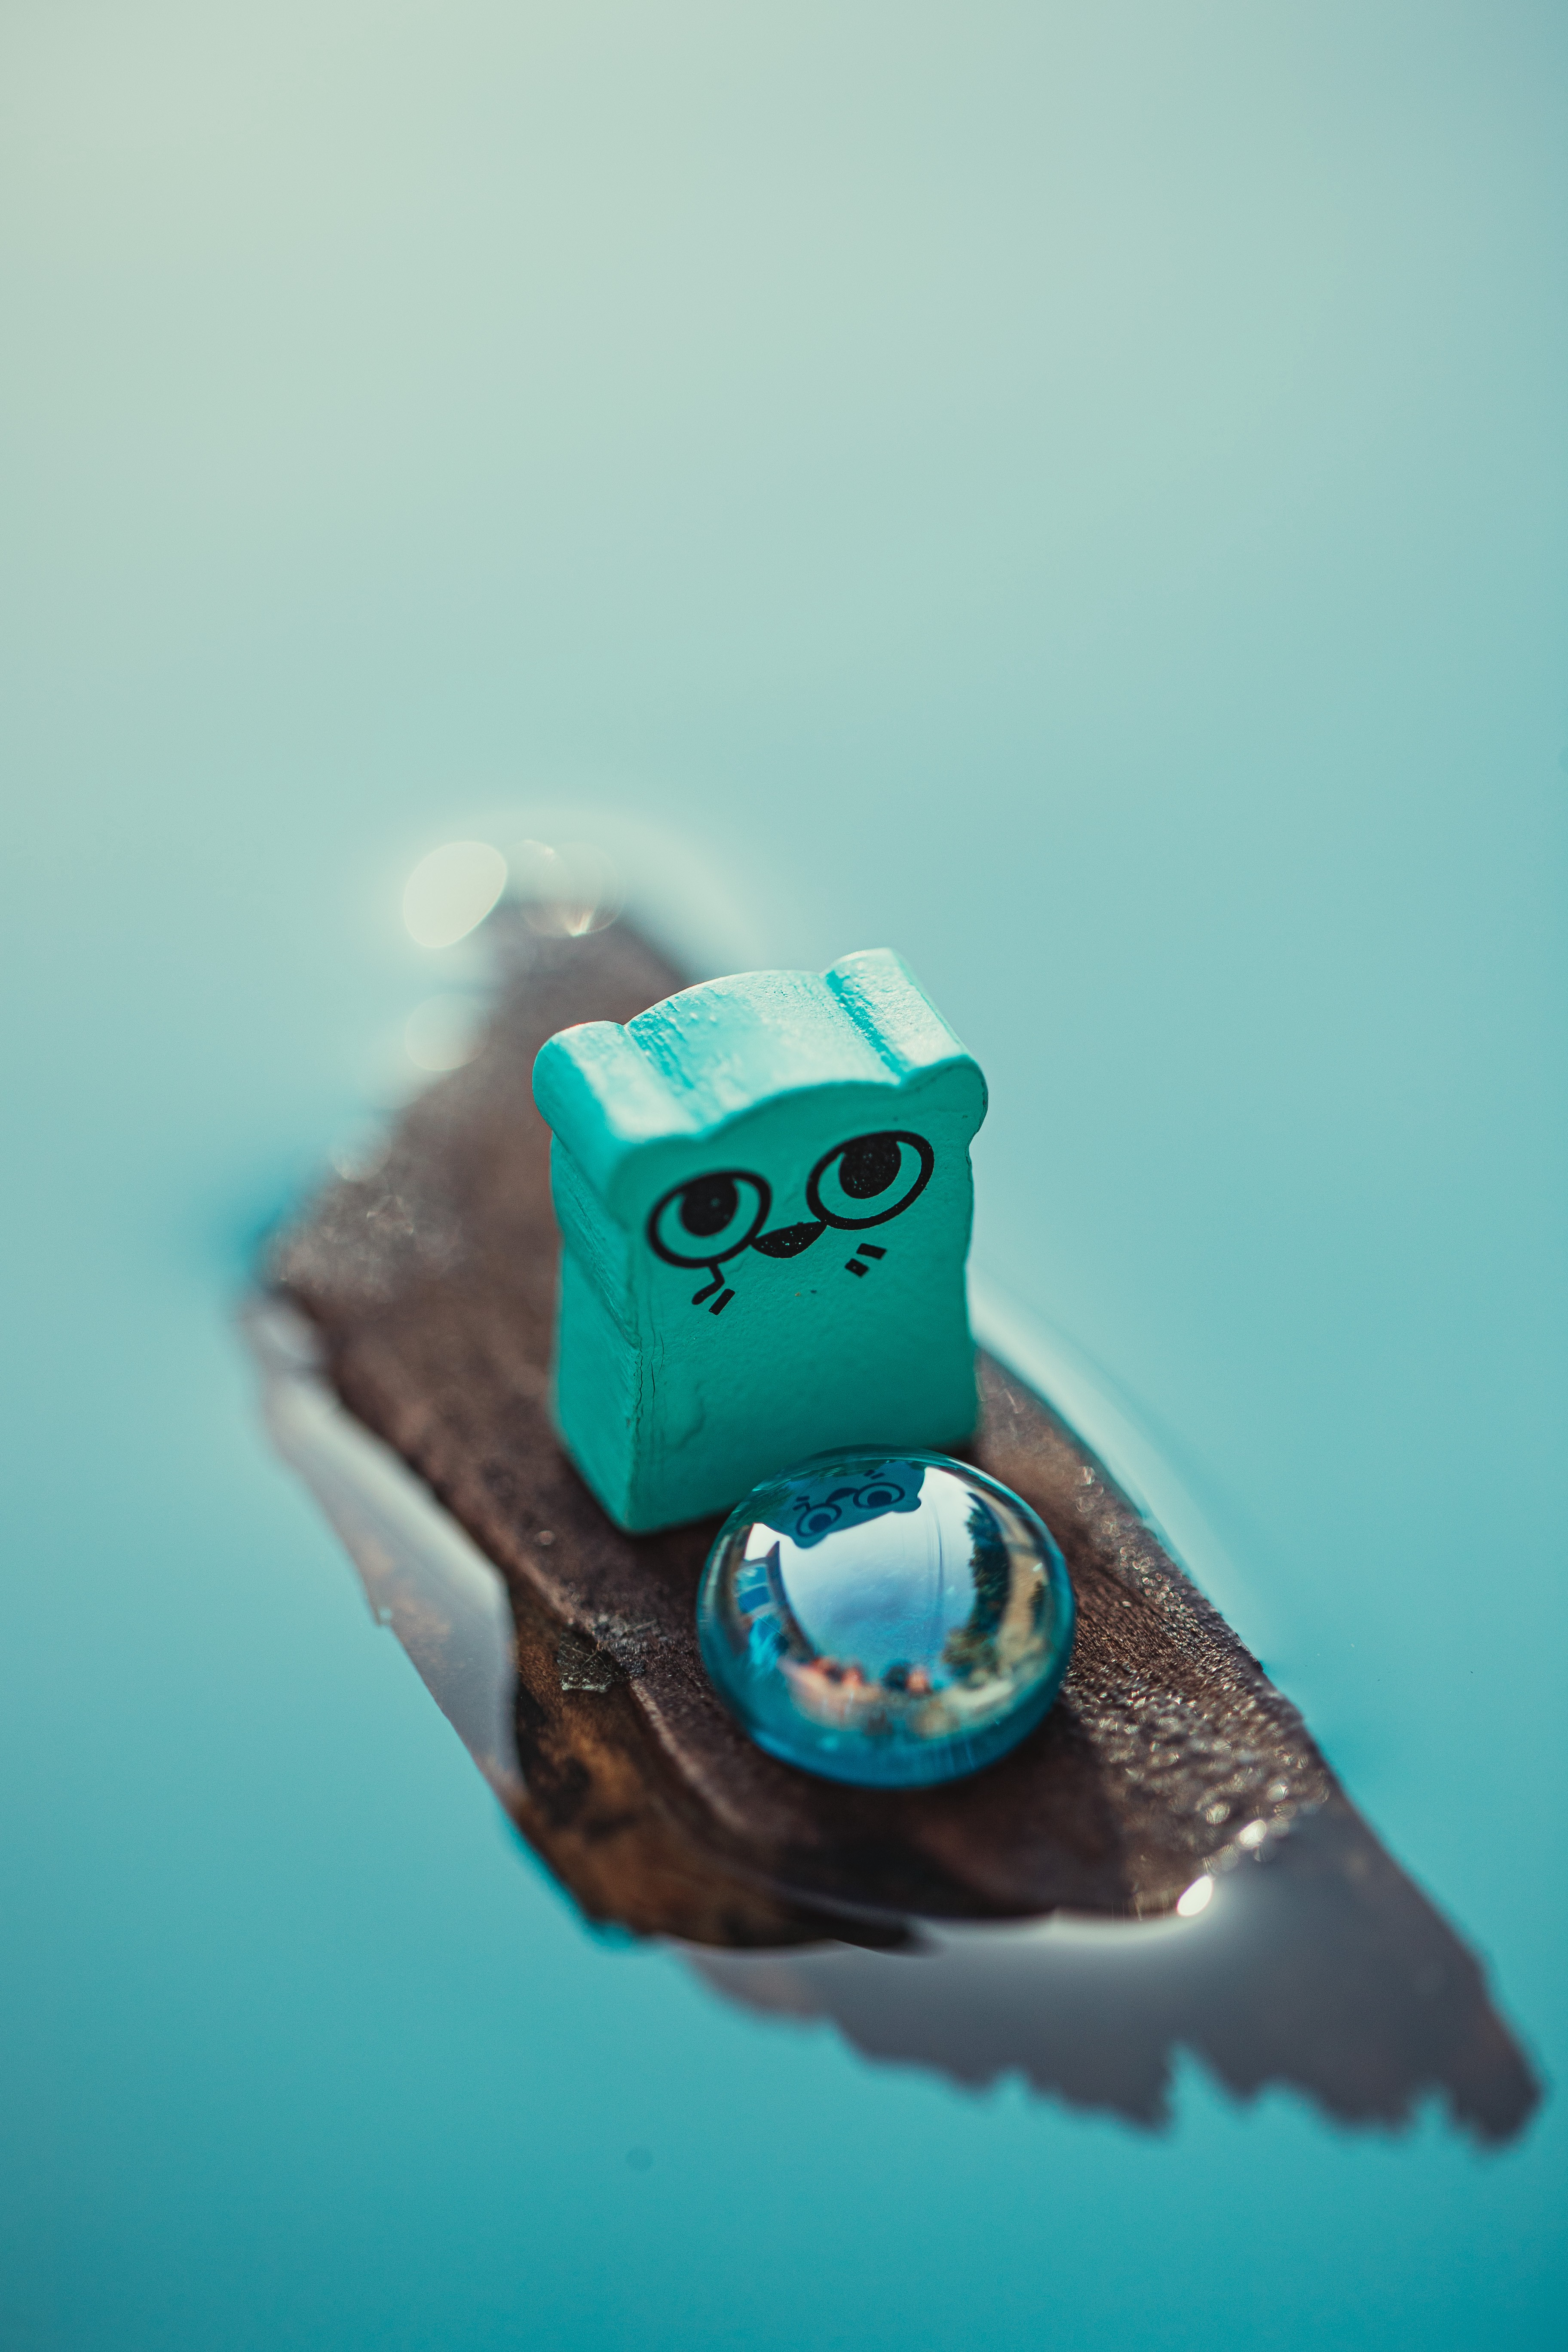 A teal, otter character meeple from the game Root floats on a wooden chip. I shiny blue marble sits in front on the otter.